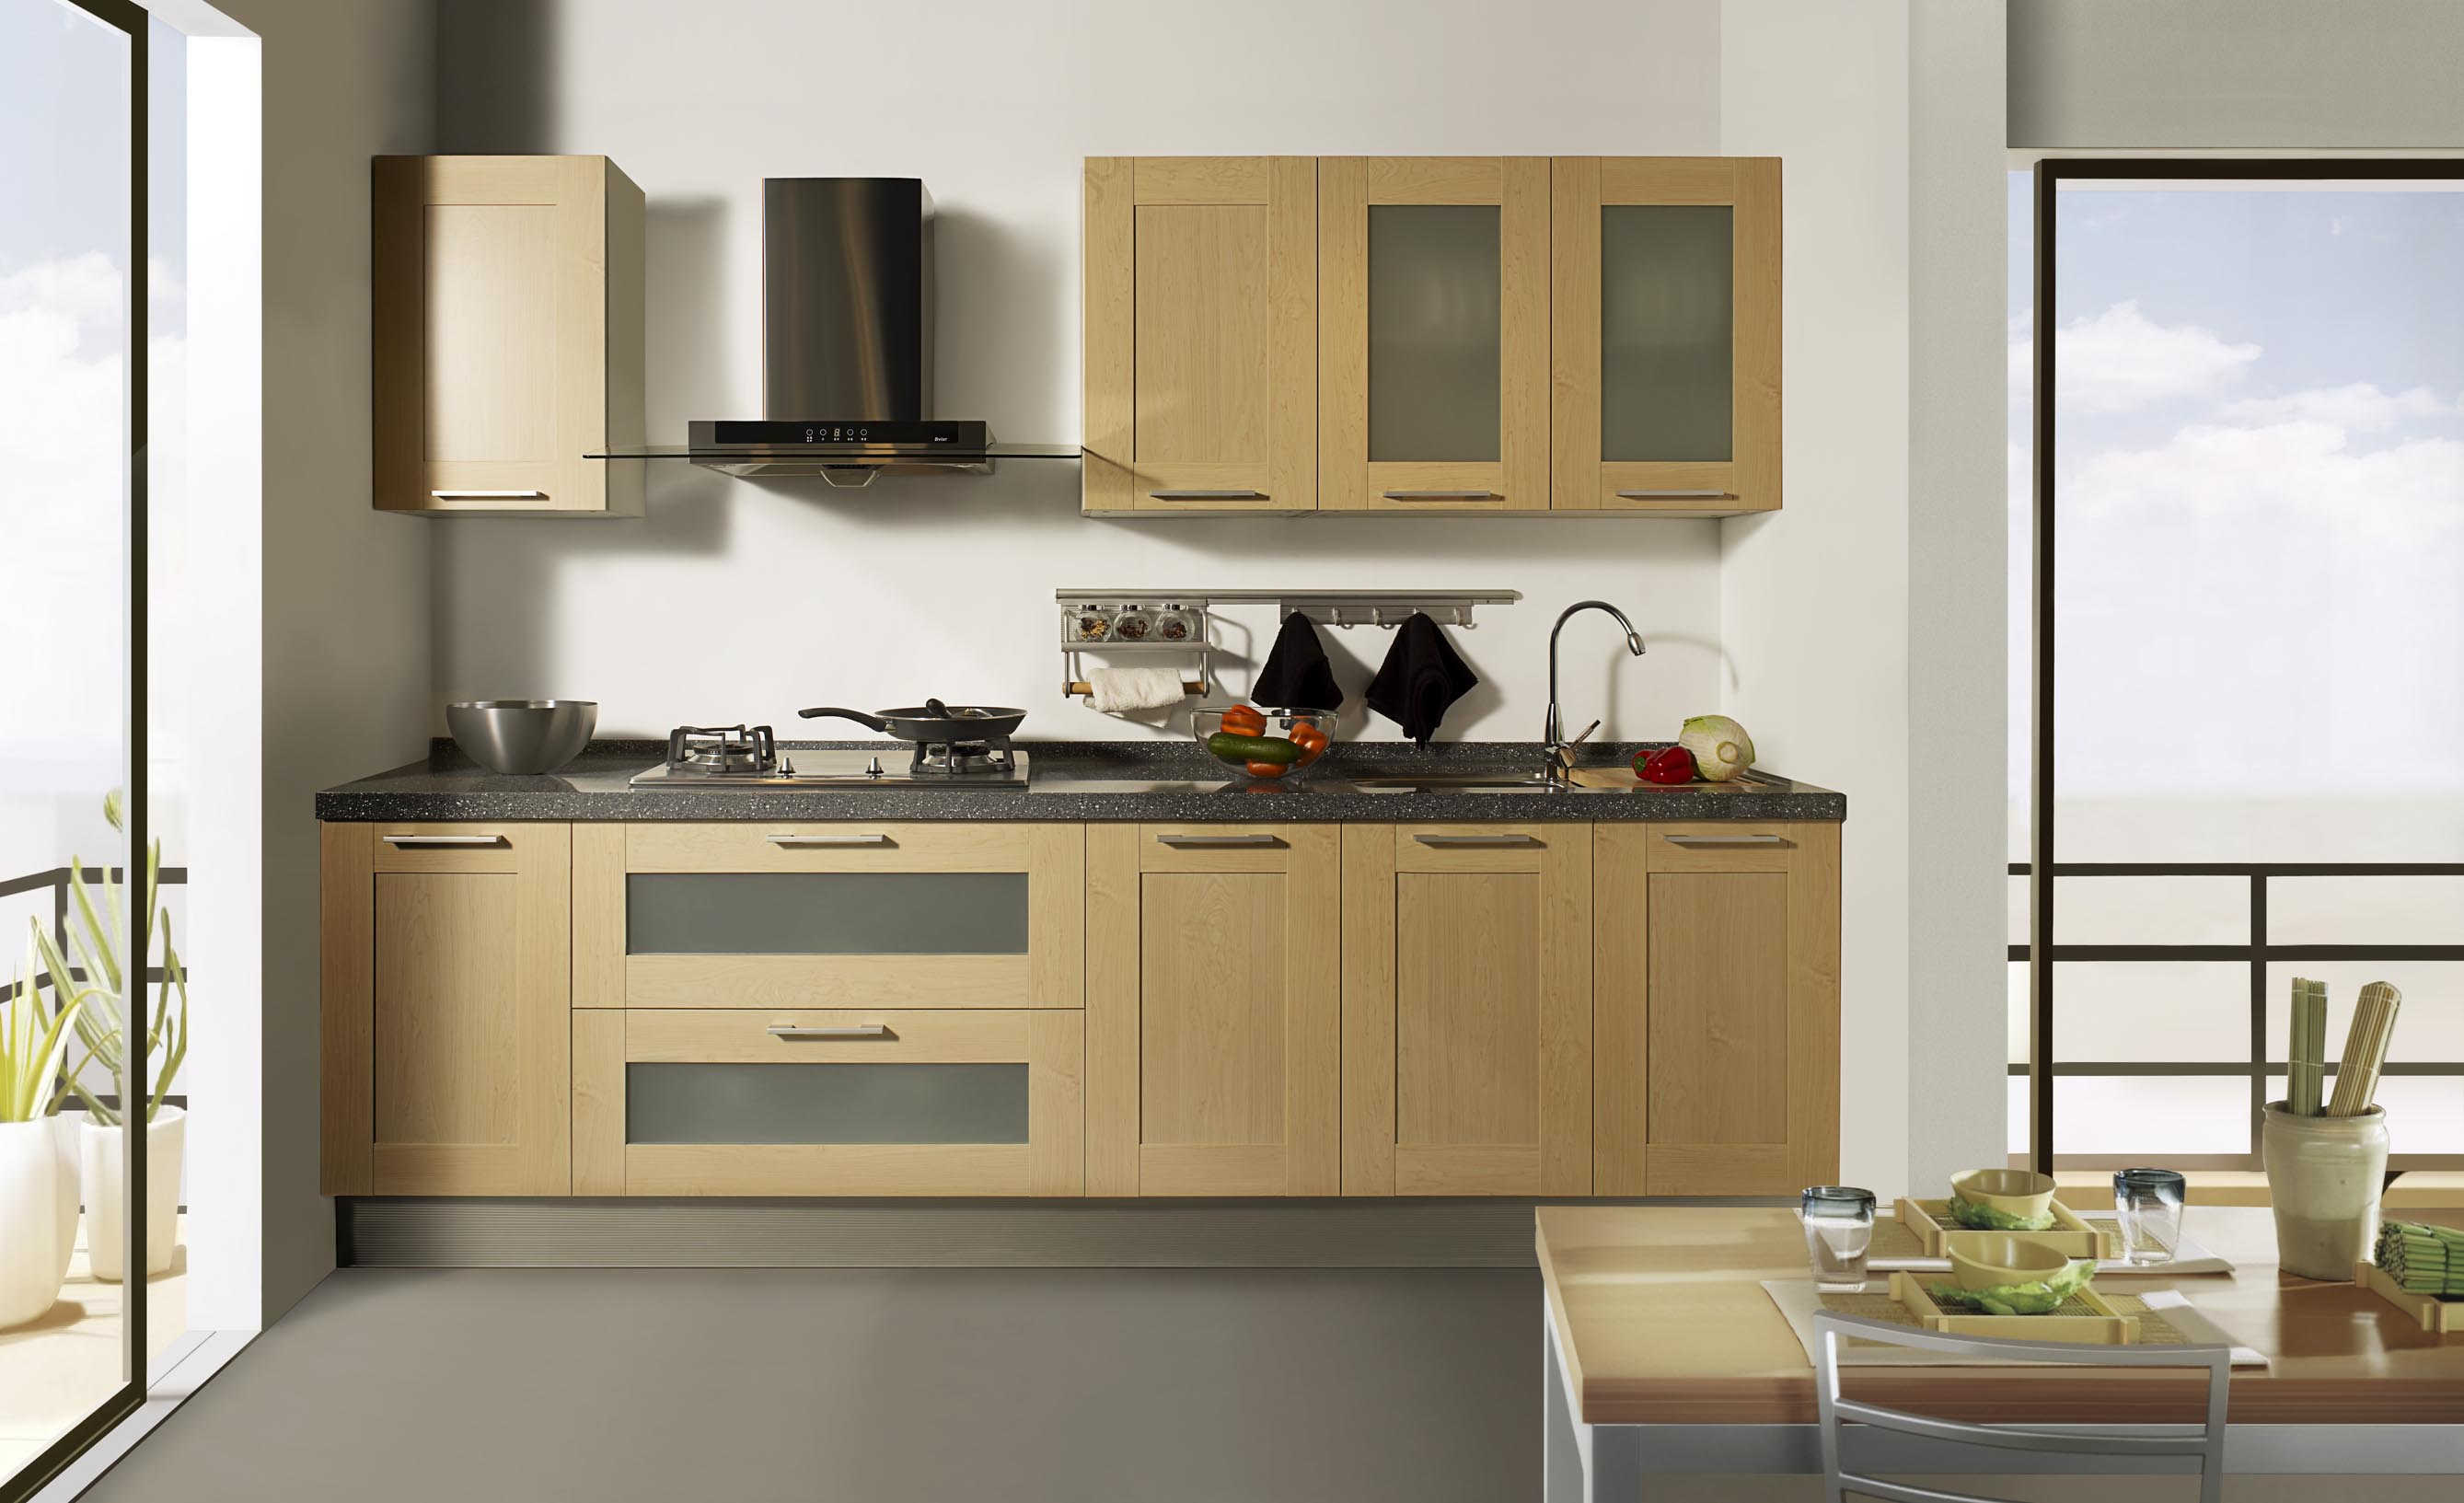 Contemporary DIY Kitchen Cabinet Made from Wood and Simple Dining Table with Chairs